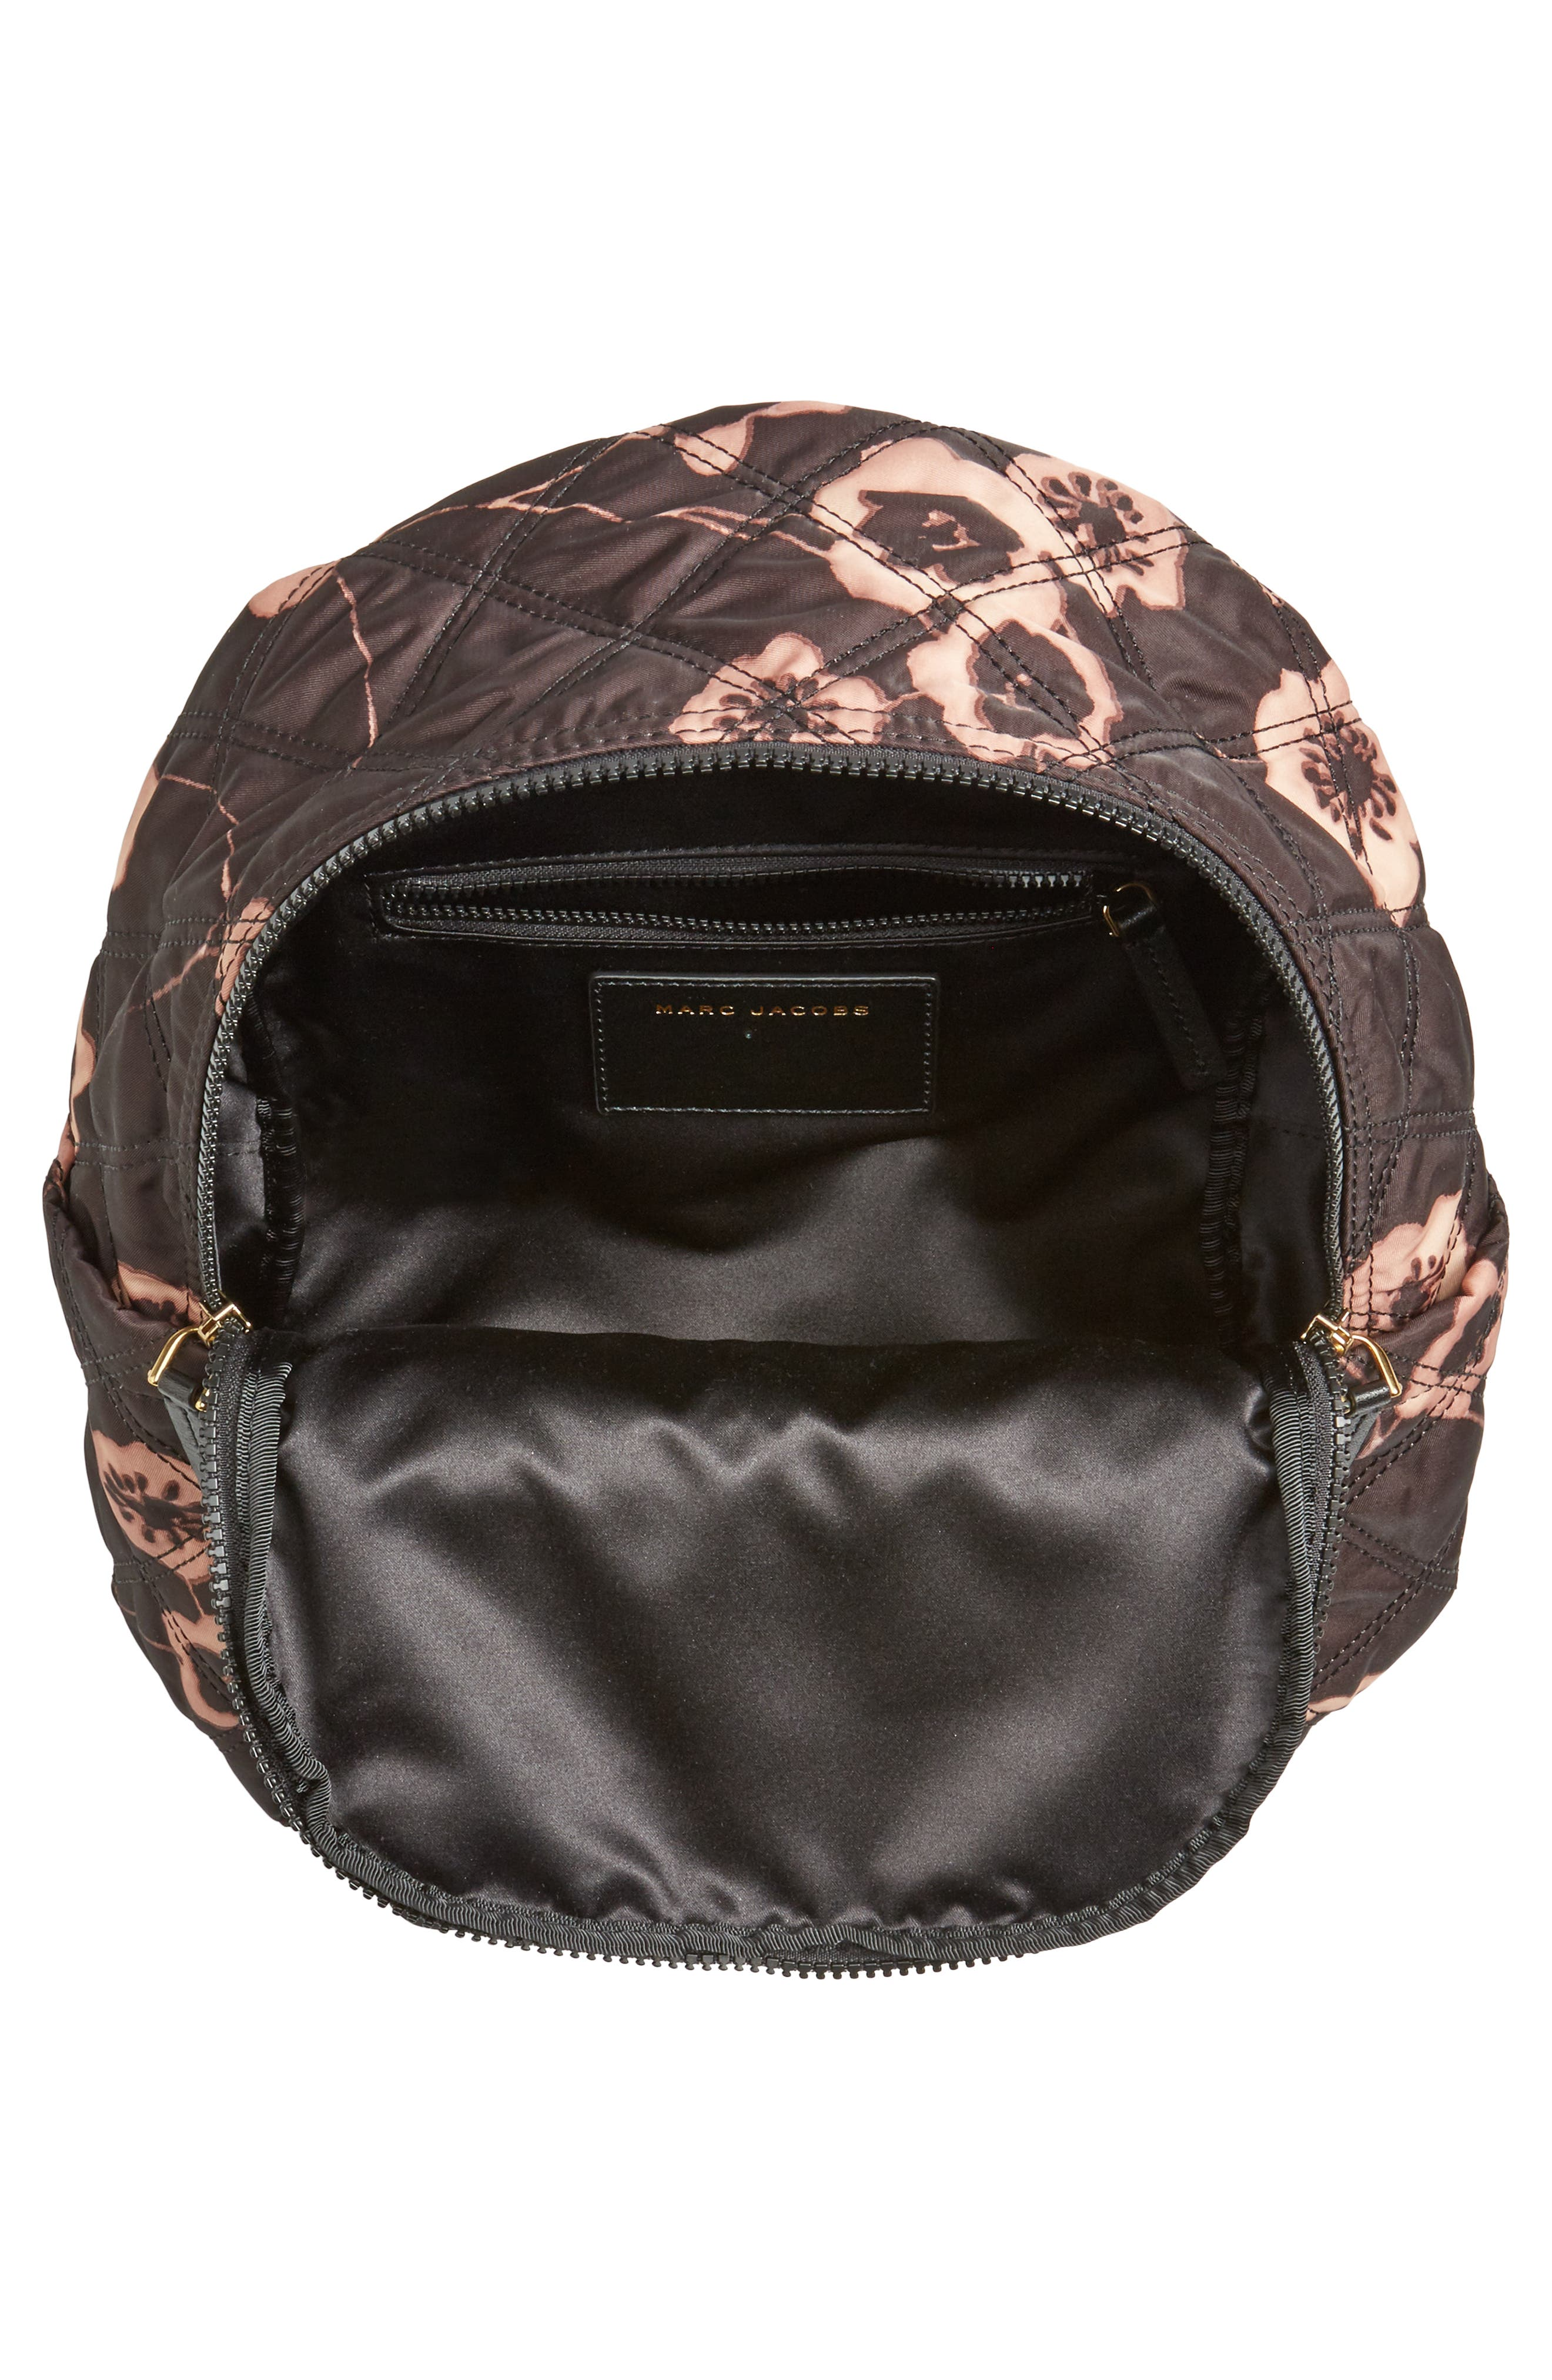 Small Violet Vines Knot Backpack,                             Alternate thumbnail 4, color,                             002